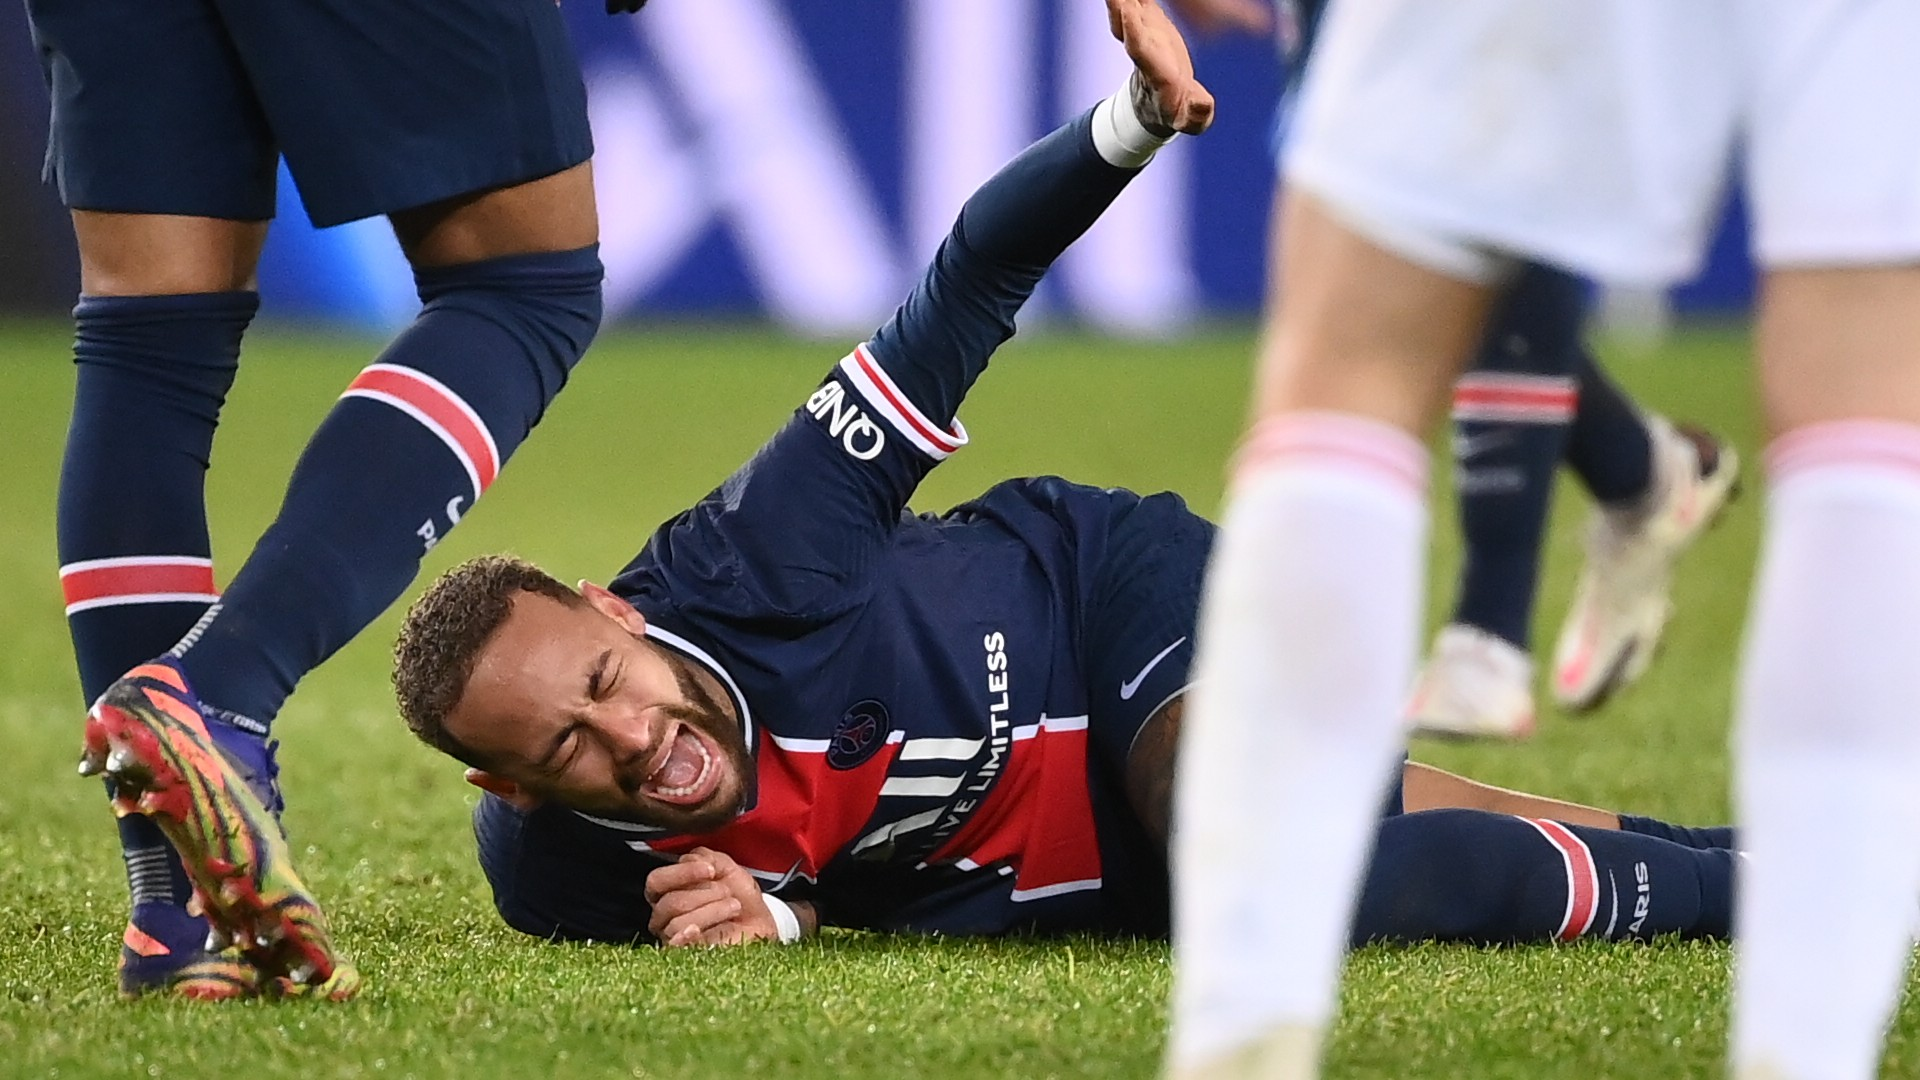 'God saved me' - PSG star Neymar credits divine intervention for positive injury prognosis